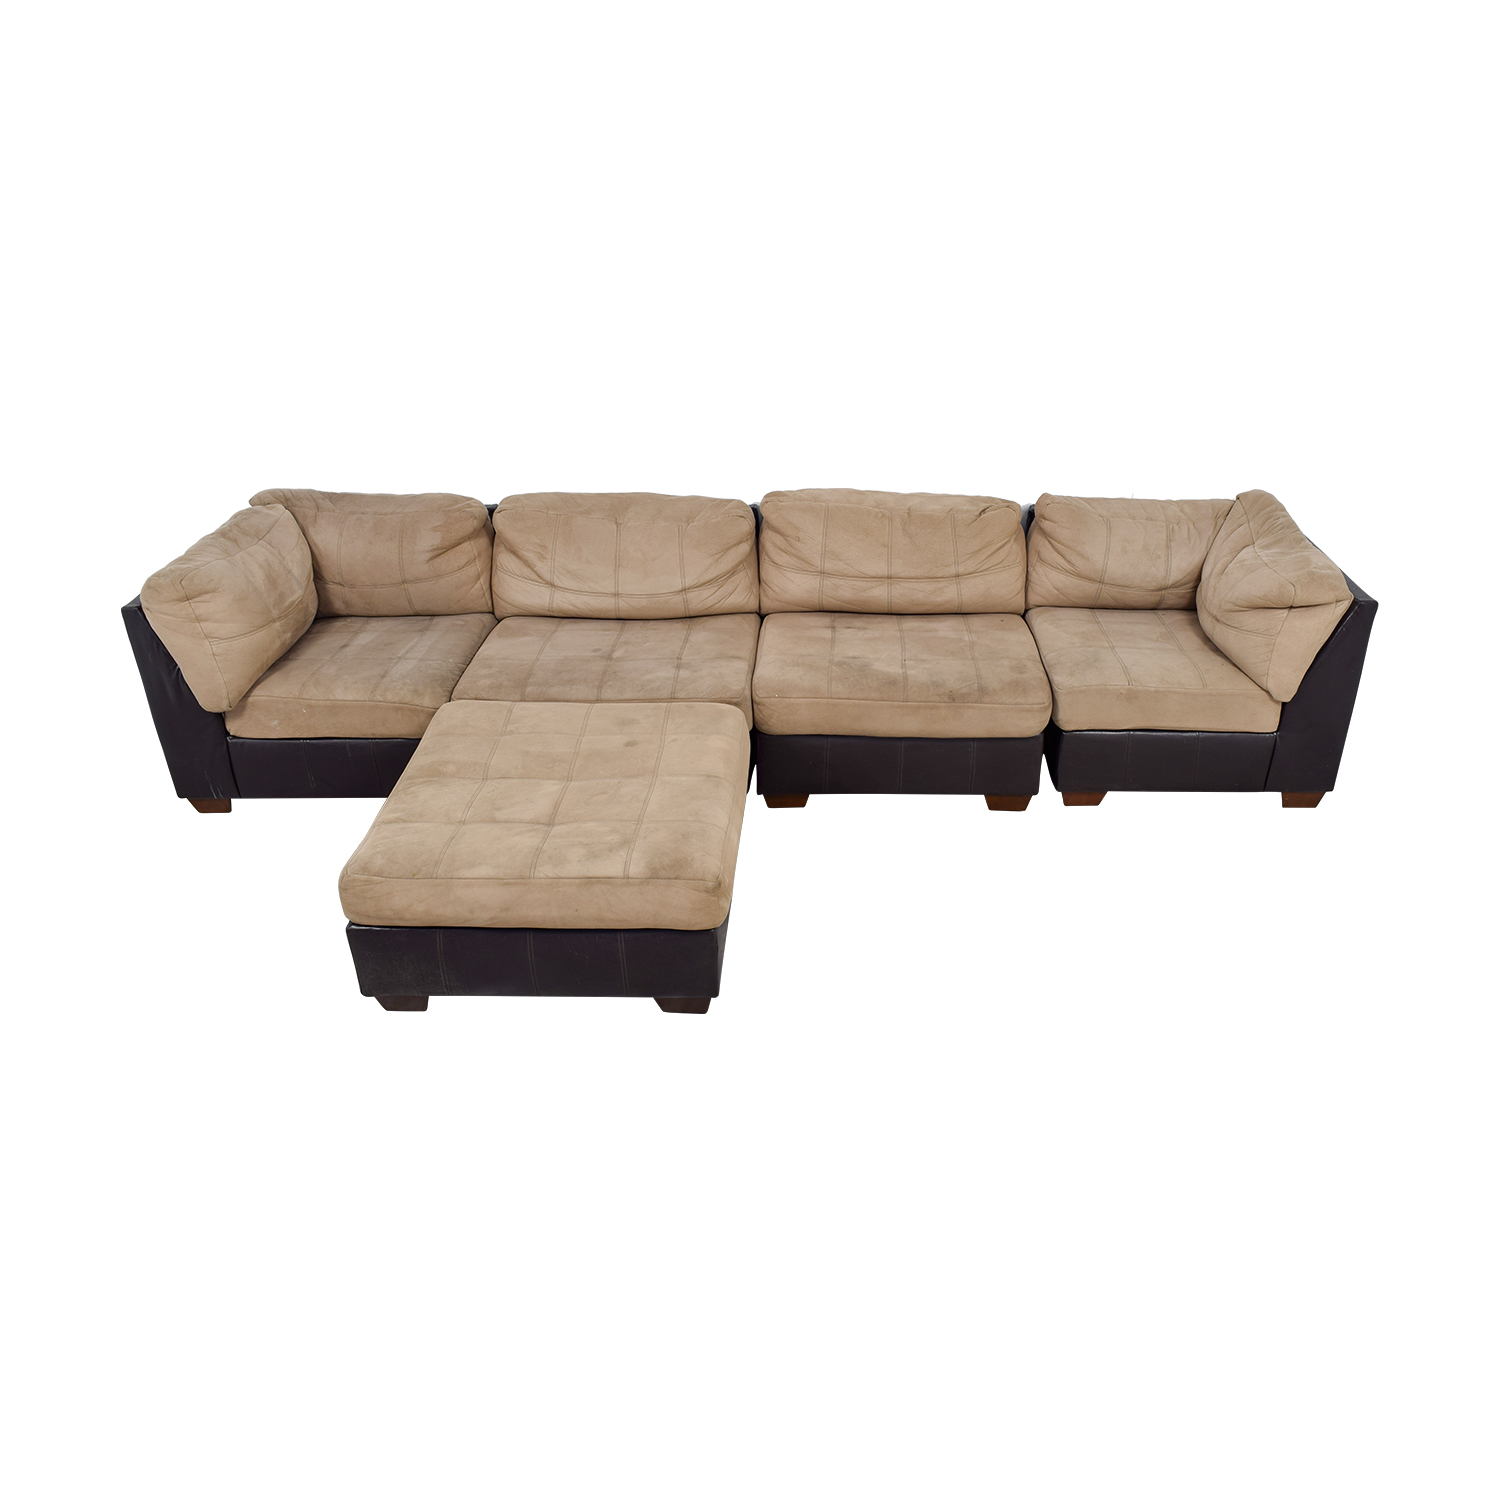 Ashley Furniture Ashley Furniture Brown Leather and Beige Sectional discount